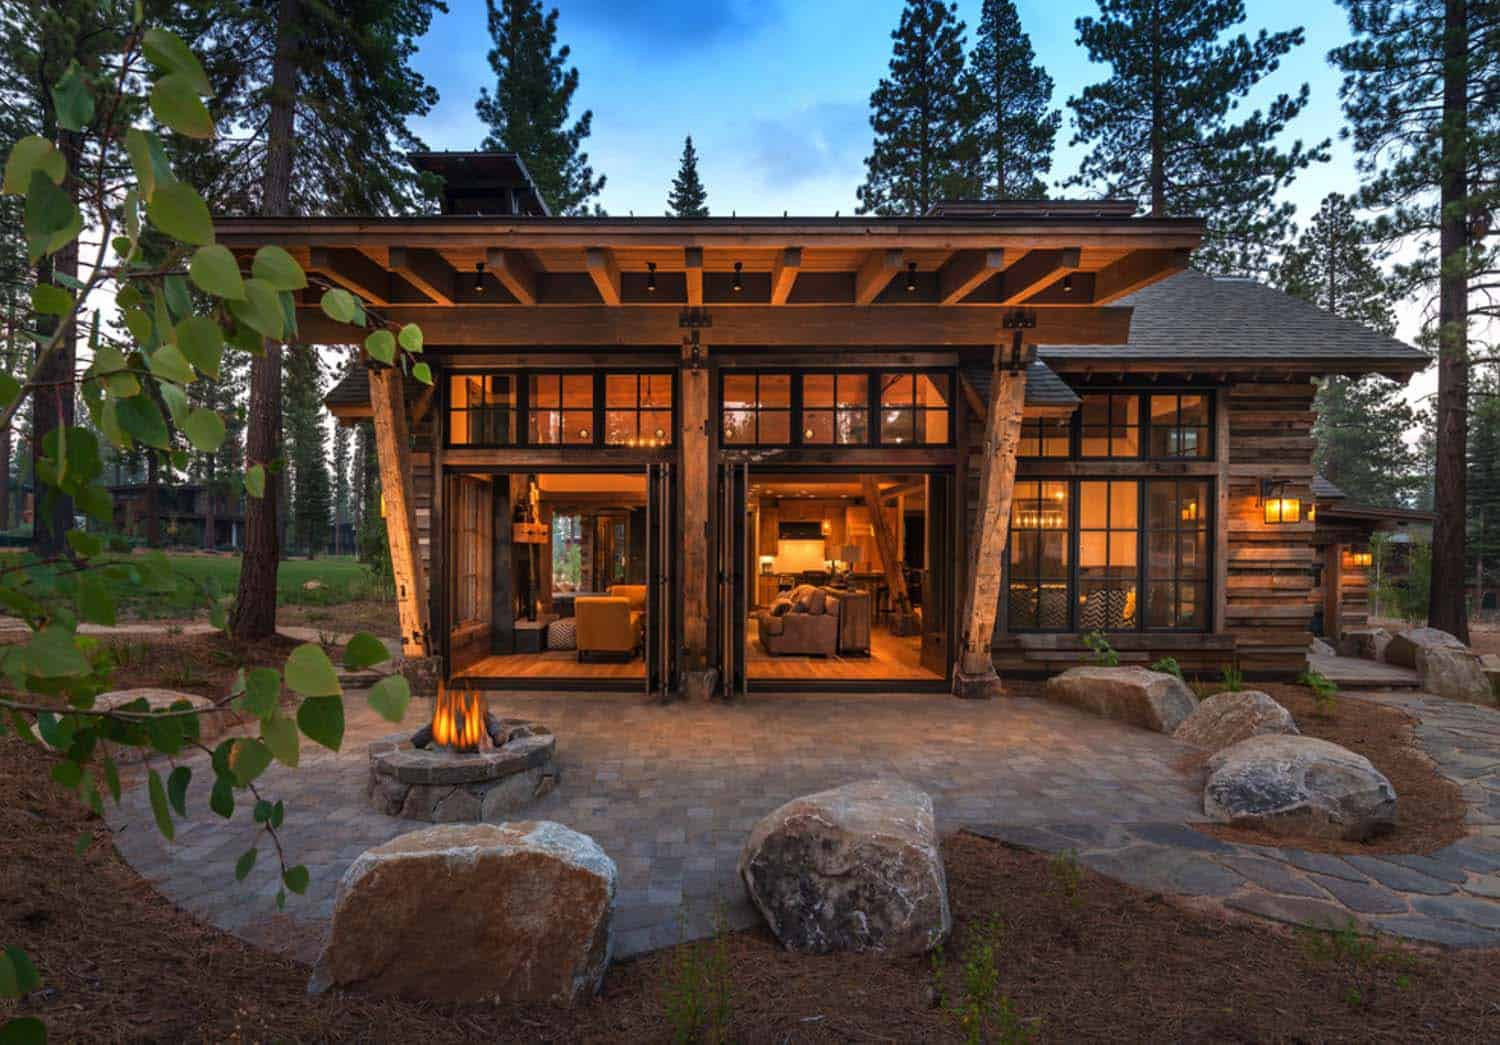 Vacation Cabin Plans Cozy Mountain Style Cabin Getaway In Martis Camp California